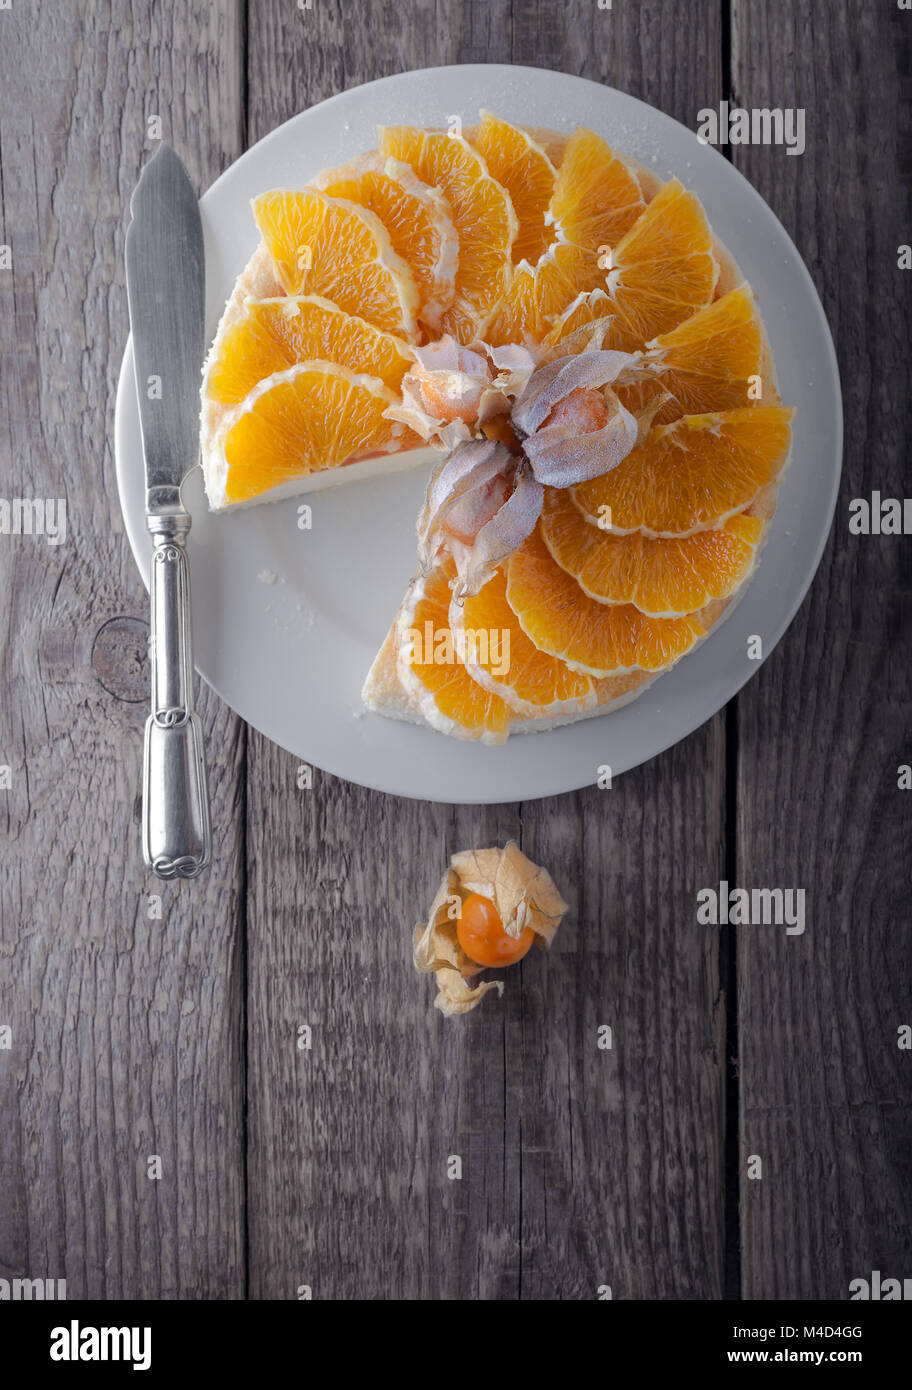 Cheesecake decorated with oranges and physalis. - Stock Image